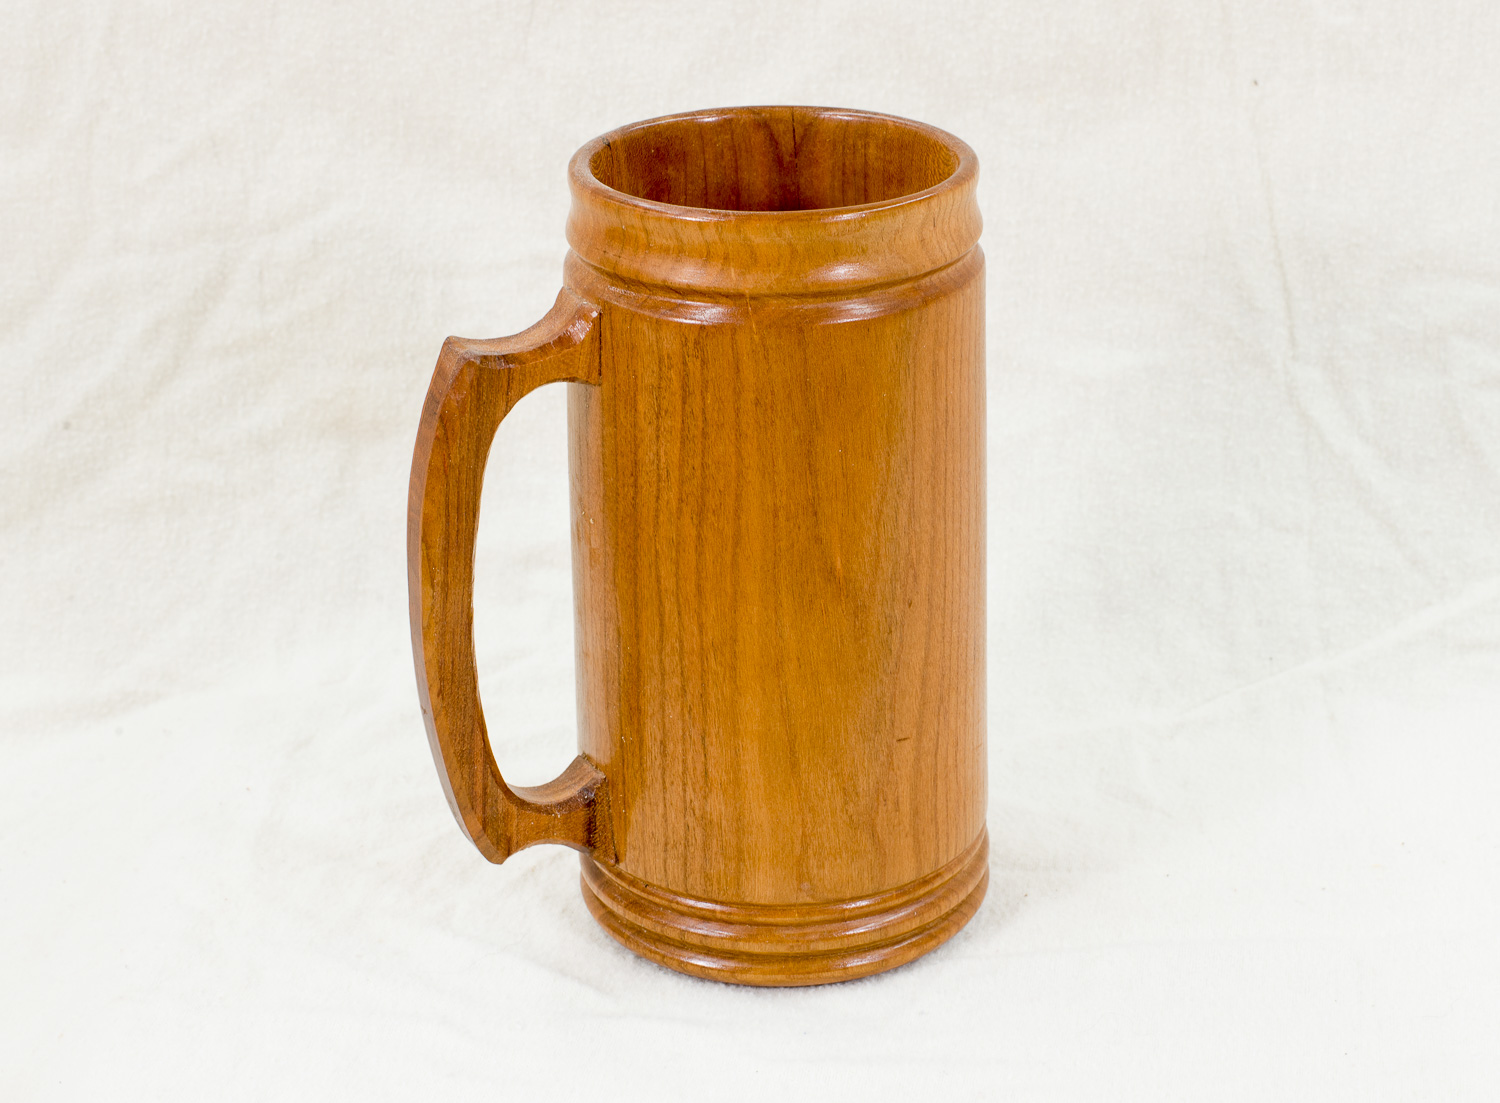 Cherry Mug, 3.5 inches x 7.5 inches